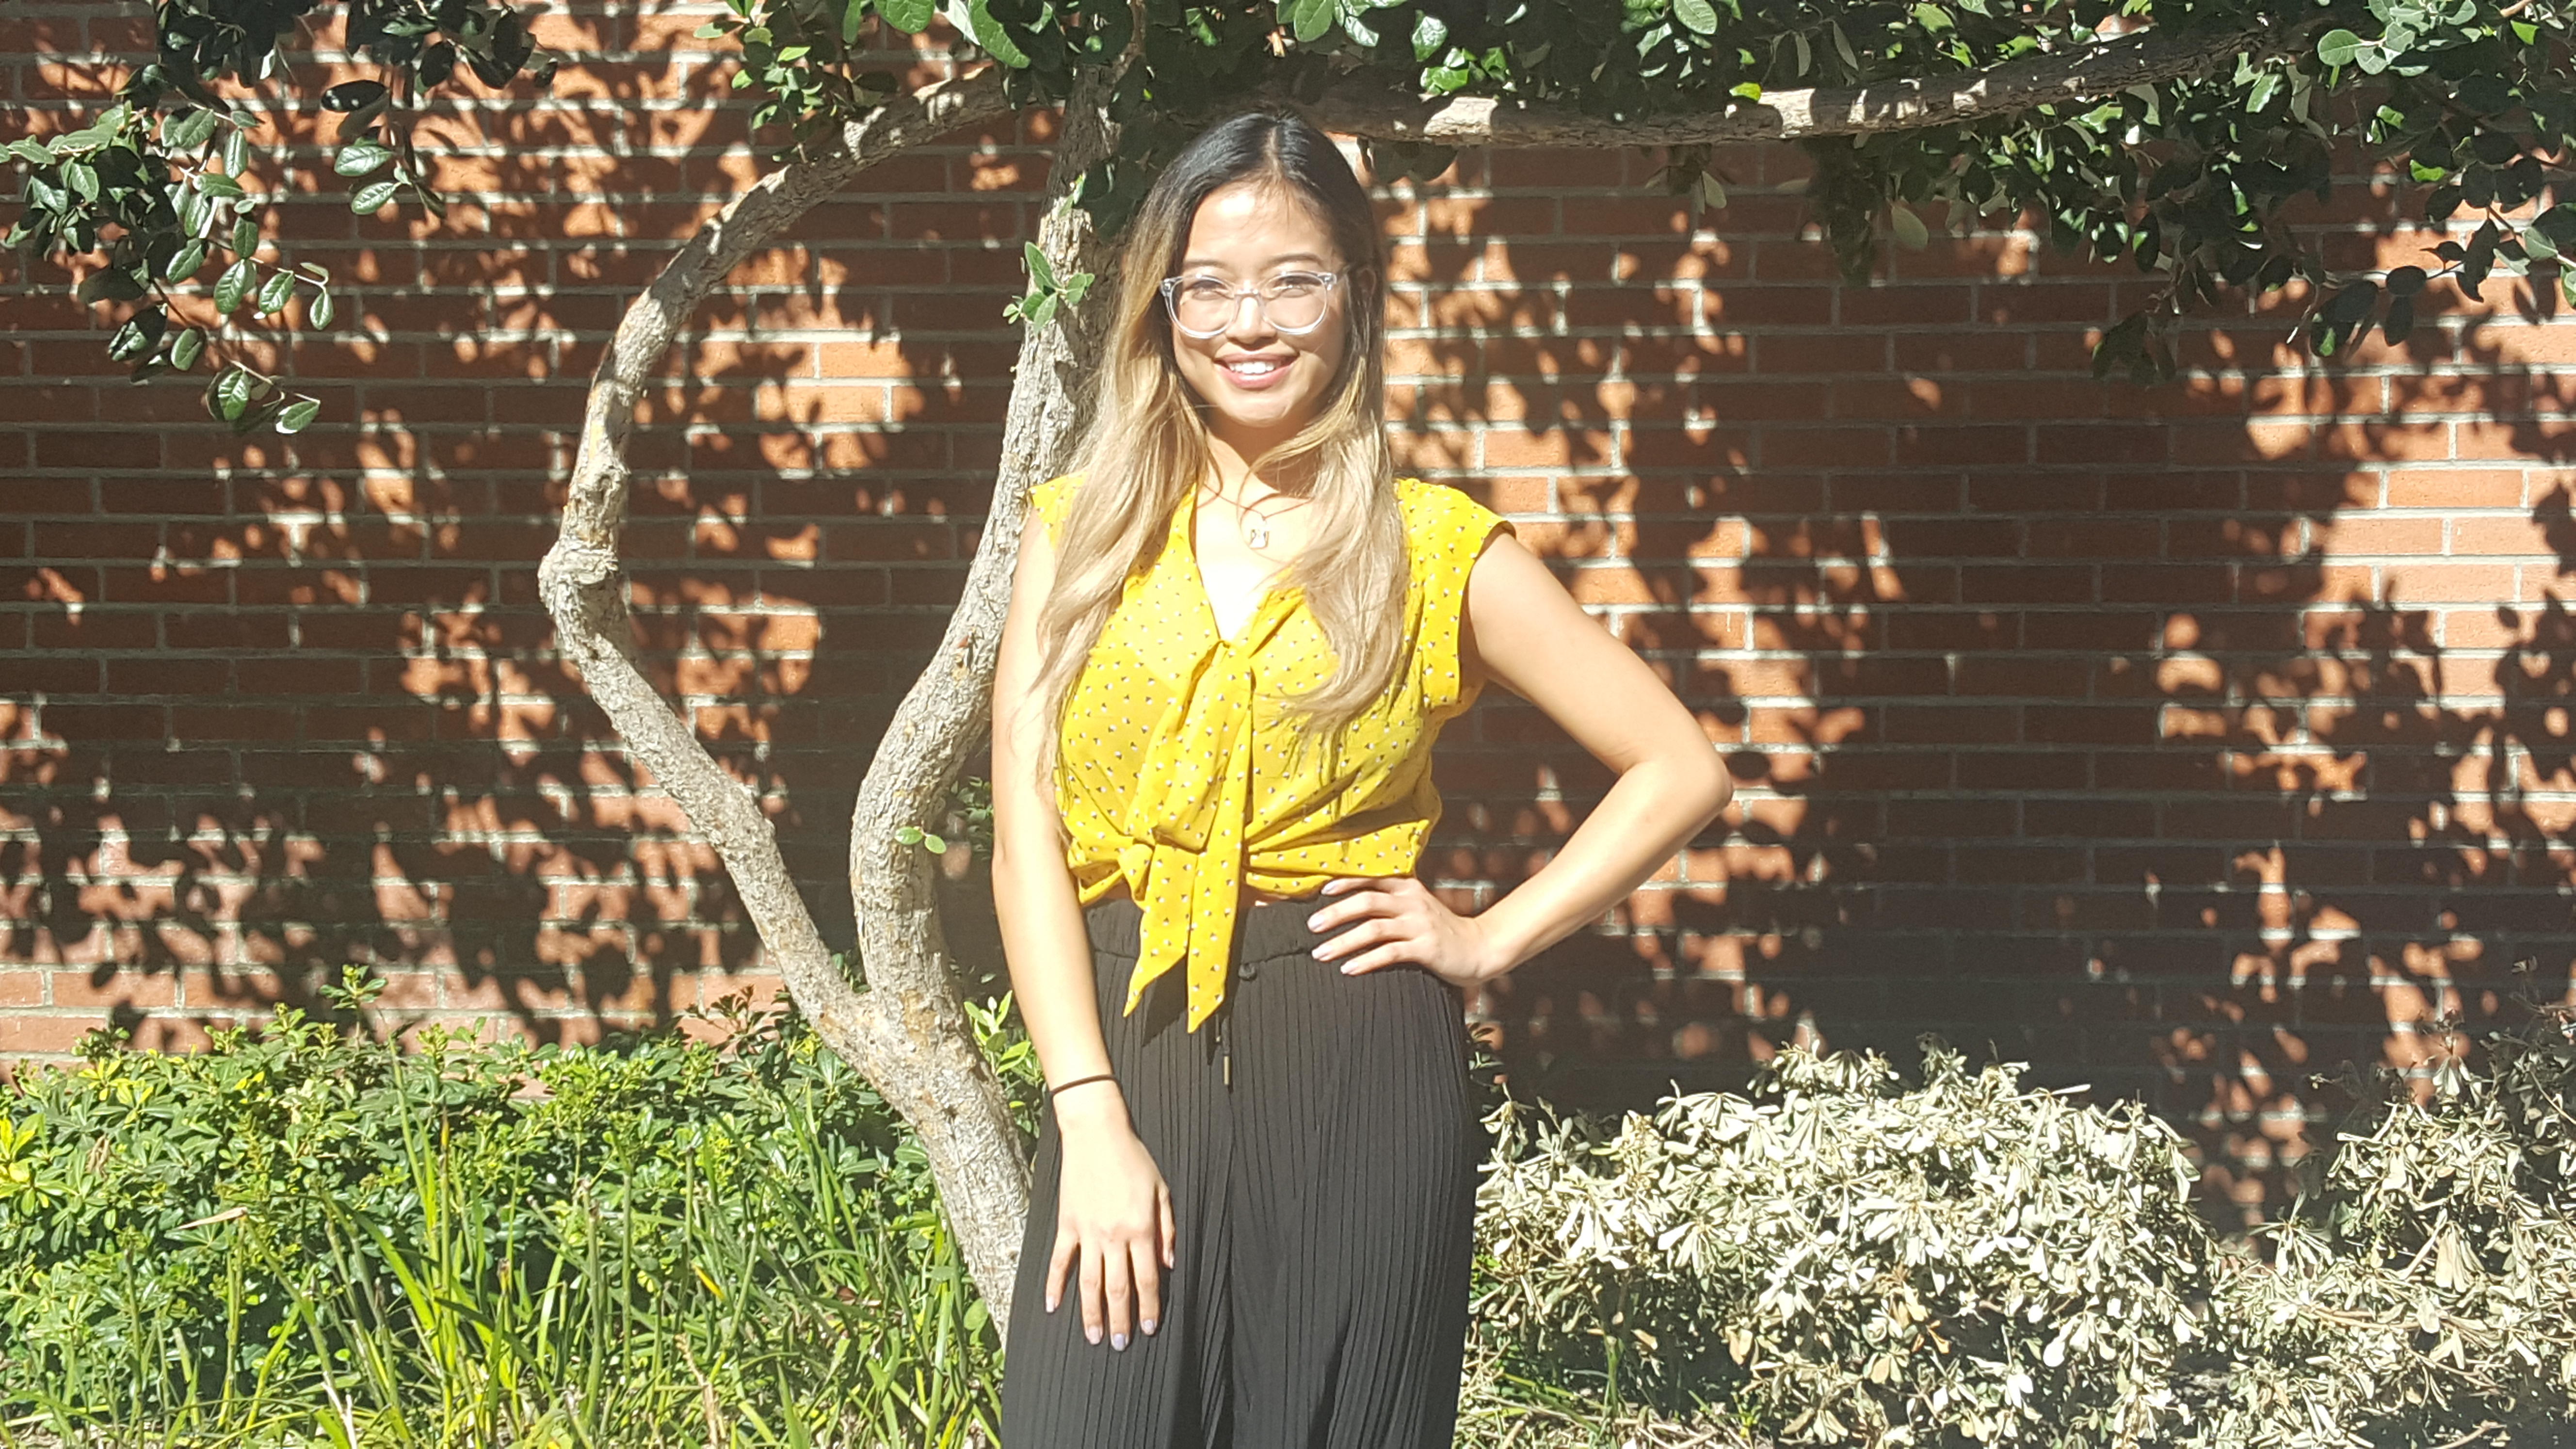 Dalena Pham is the October awardee for Student of the Month! Click on the photo to learn more.